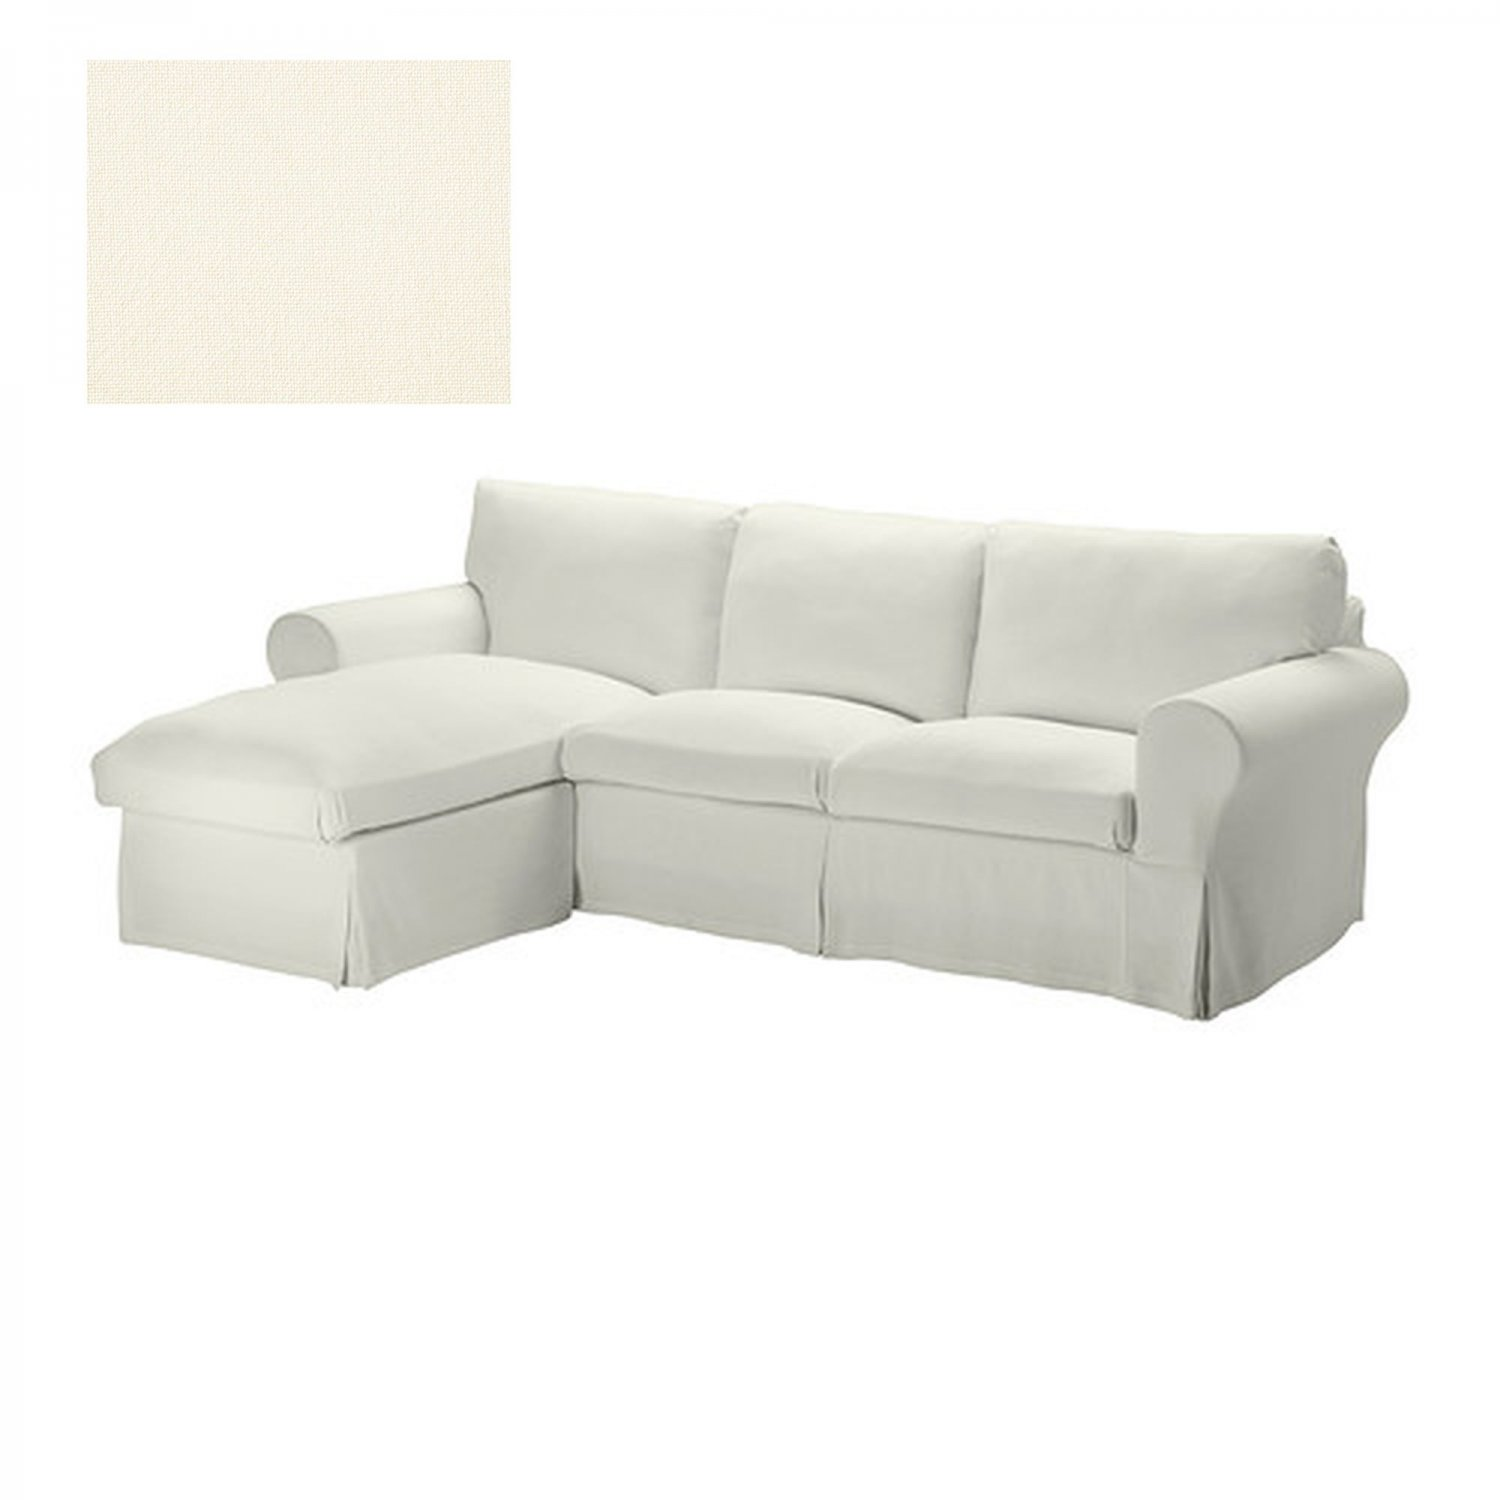 Ikea ektorp loveseat sofa w chaise slipcover 3 seat for Chaise couch slipcover